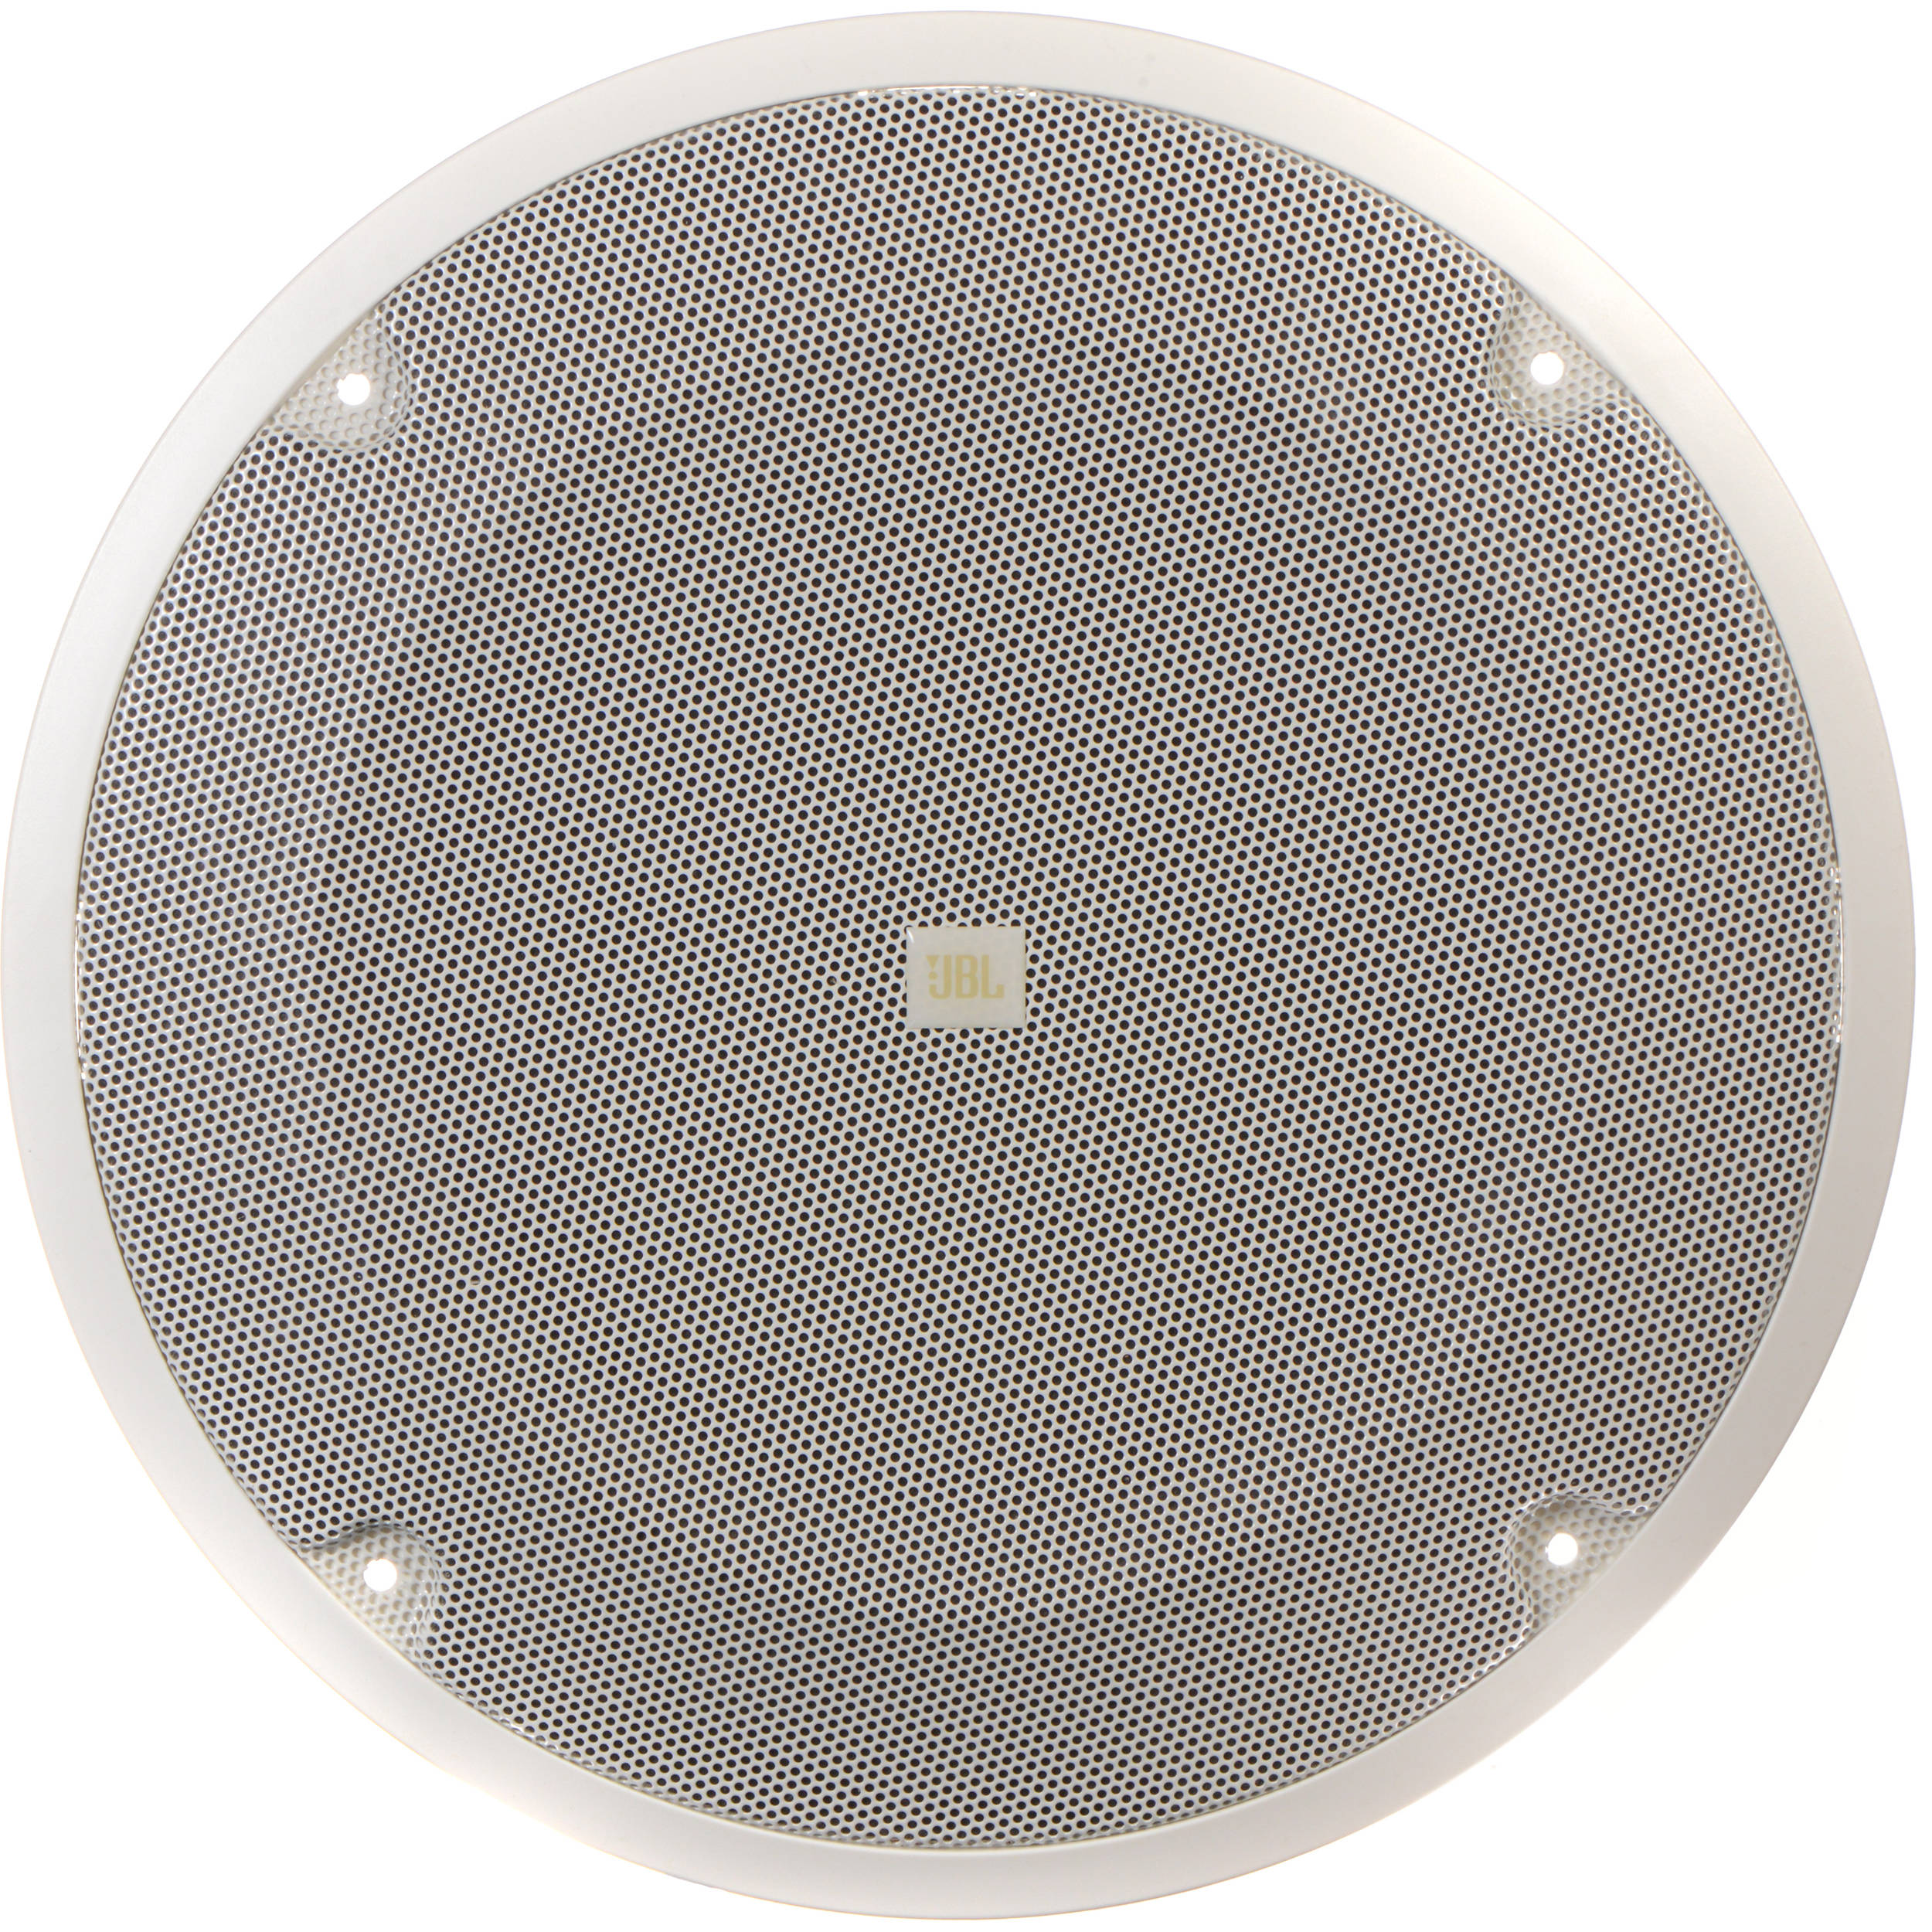 in idjnow control ceiling speakers speaker transducer jbl assembly sold open pairs pair professional loudspeaker